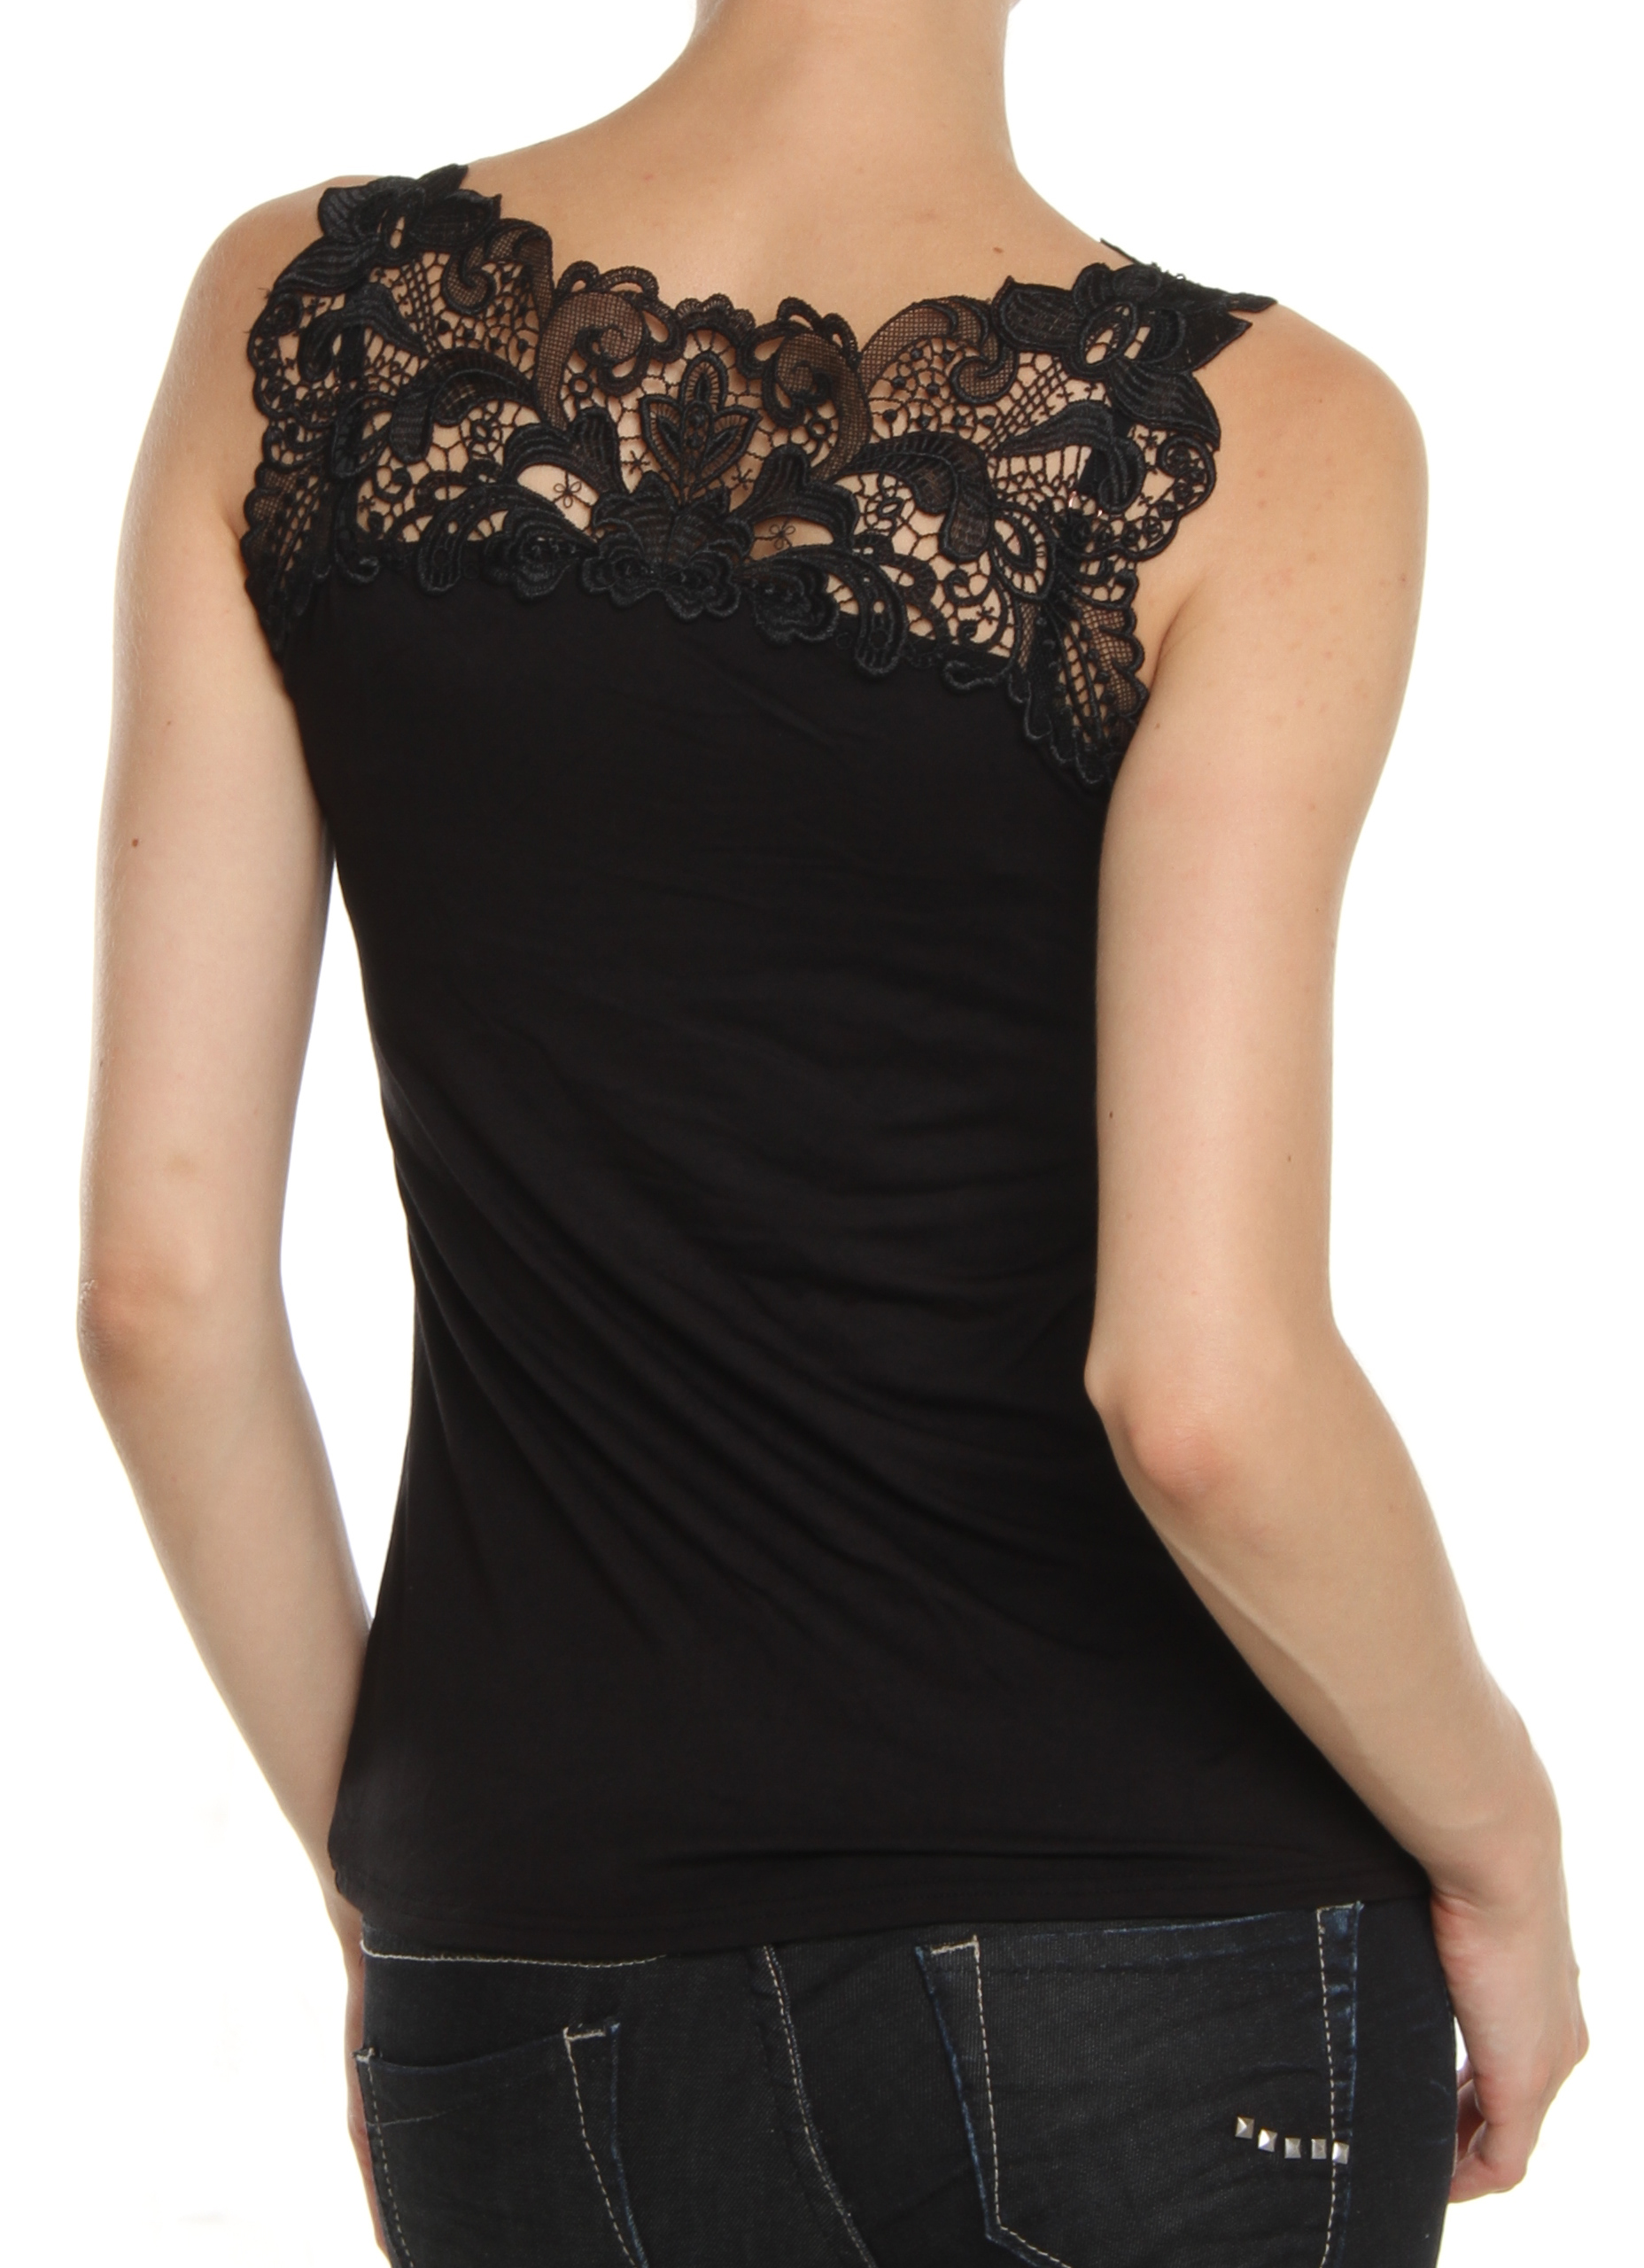 Usa camisole women lace sizes shoes for tops two piece